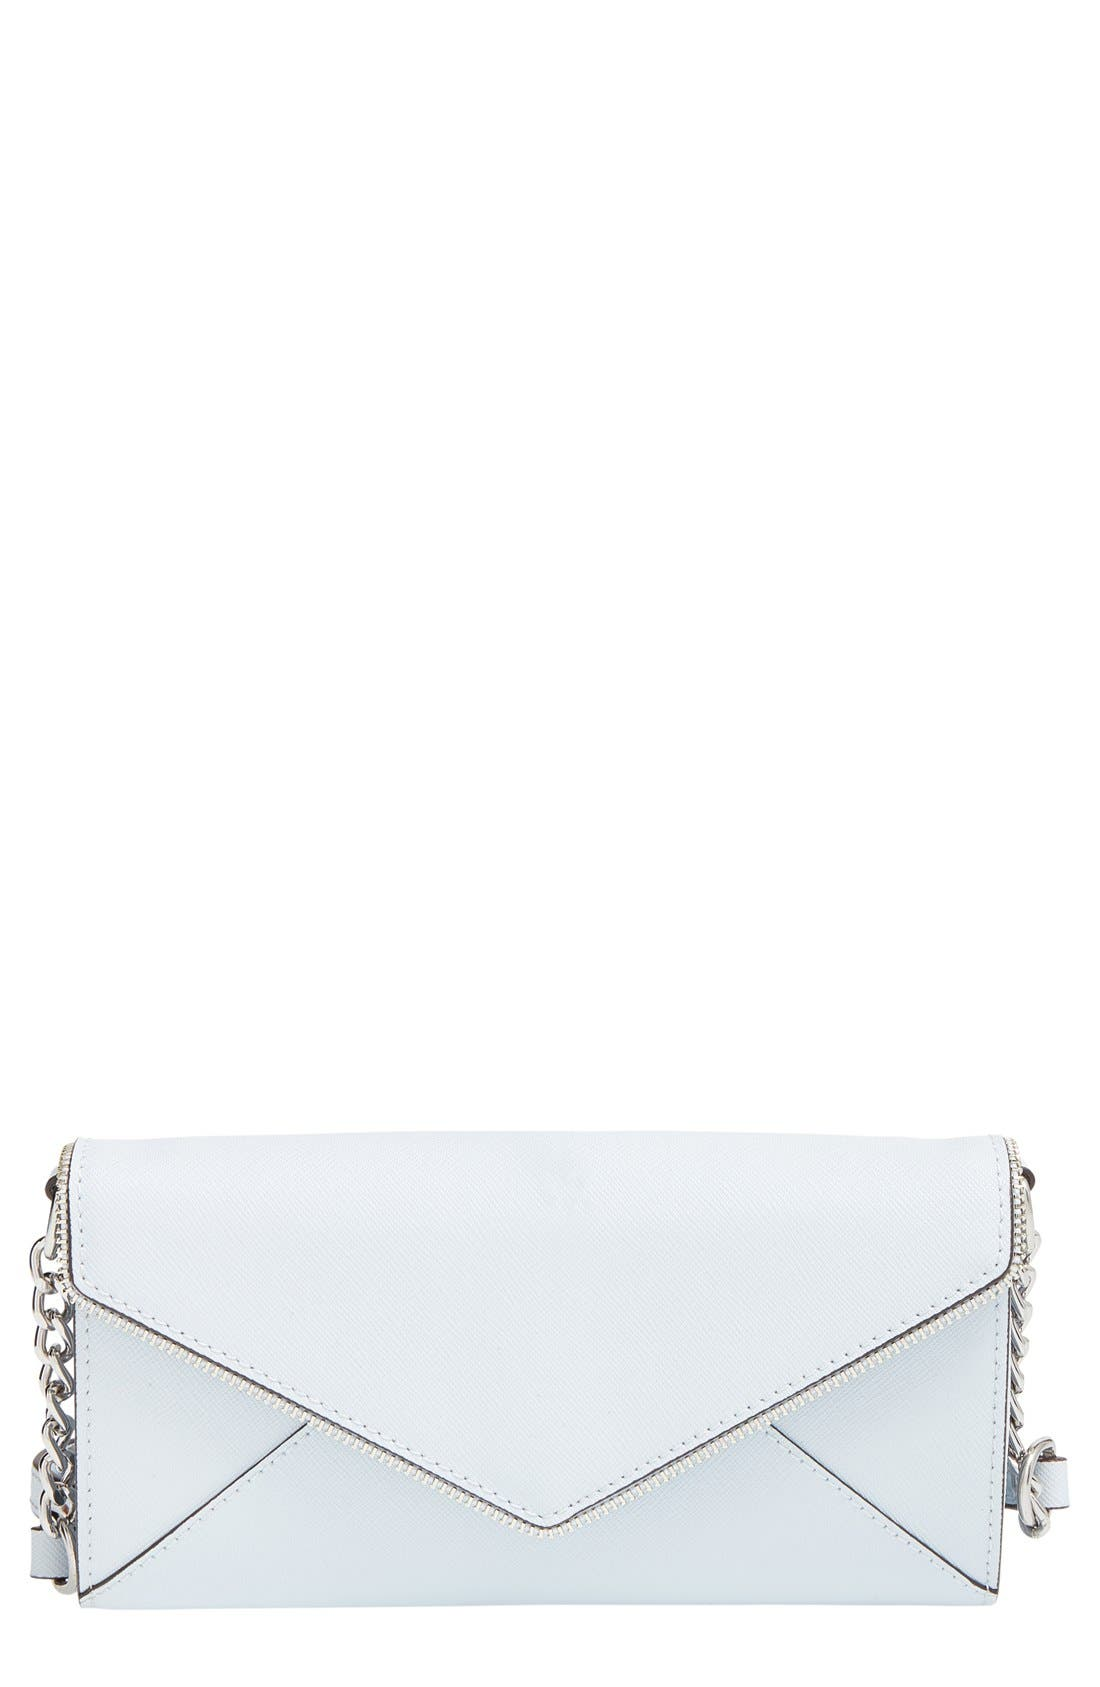 Alternate Image 1 Selected - Rebecca Minkoff 'Cleo' Wallet on a Chain